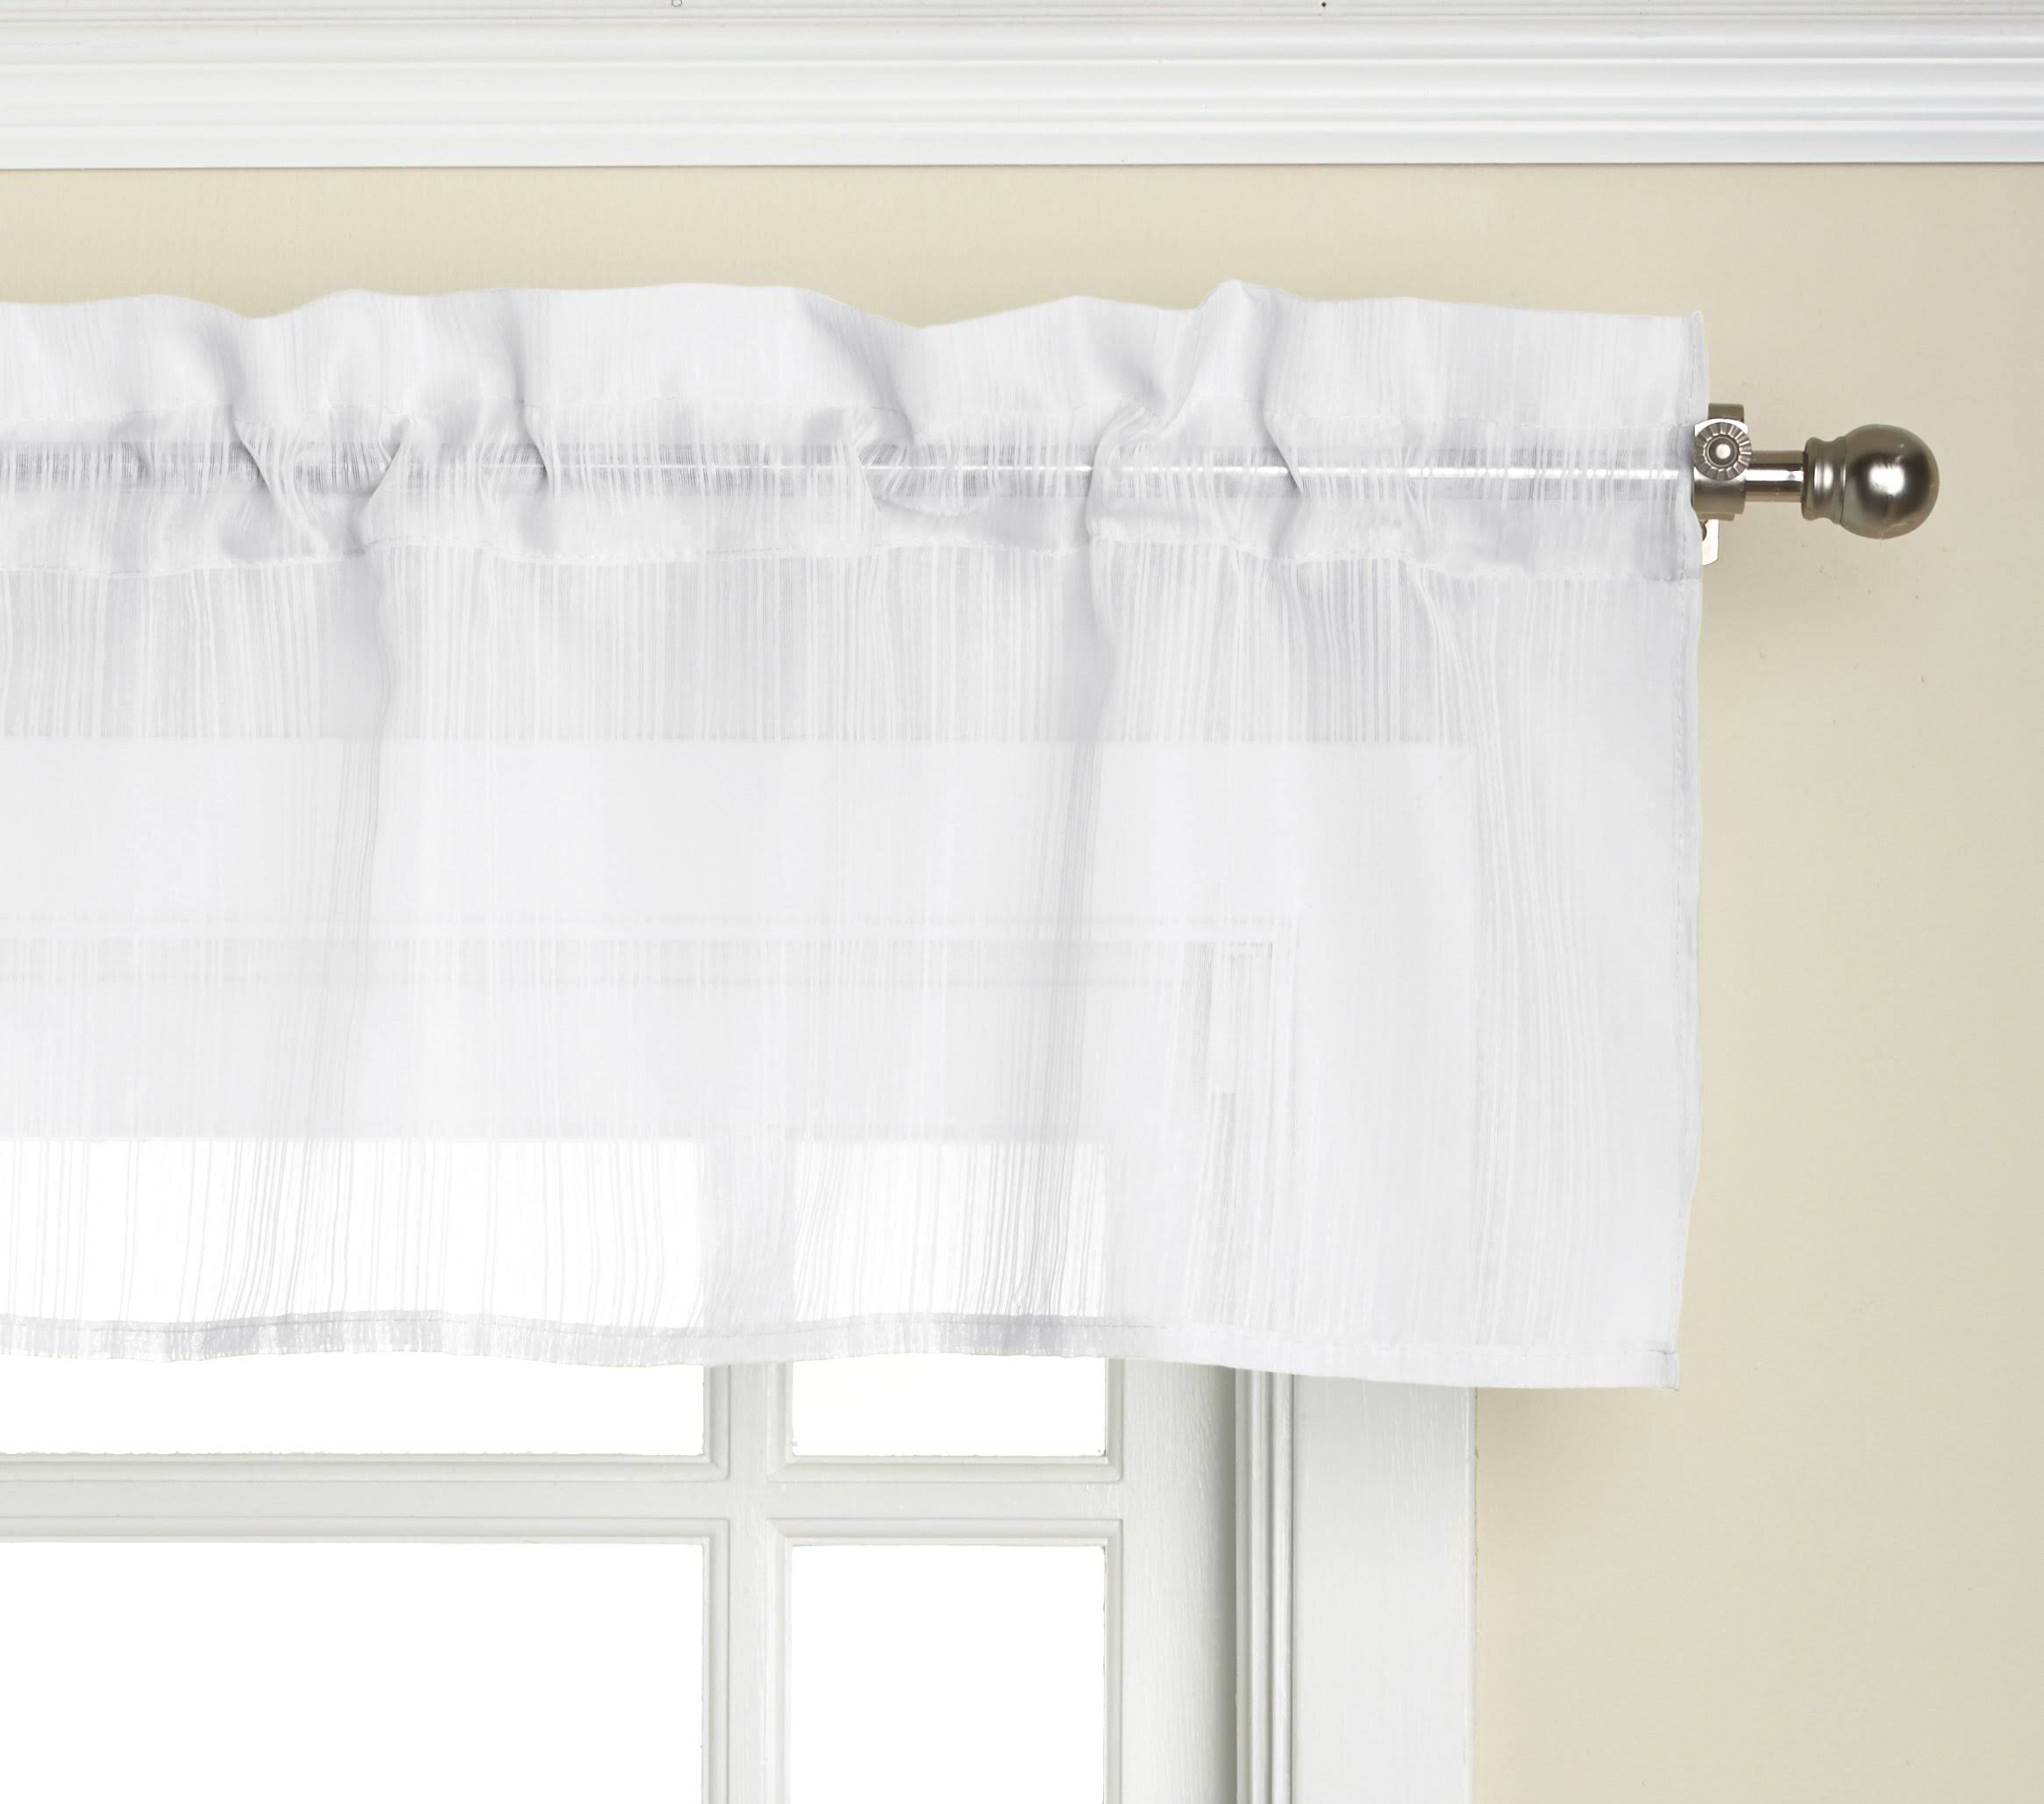 Lorraine Home Fashions Harmony Valance, 56 x 12-Inch, White